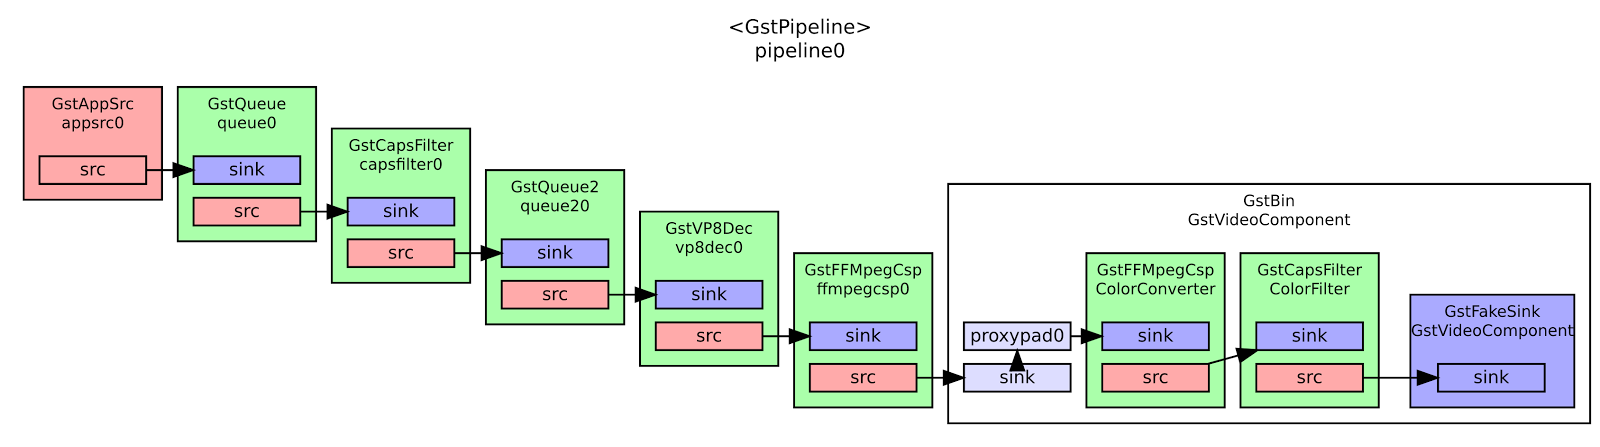 Figure 6. GStreamer pipeline to set, decode and play video.